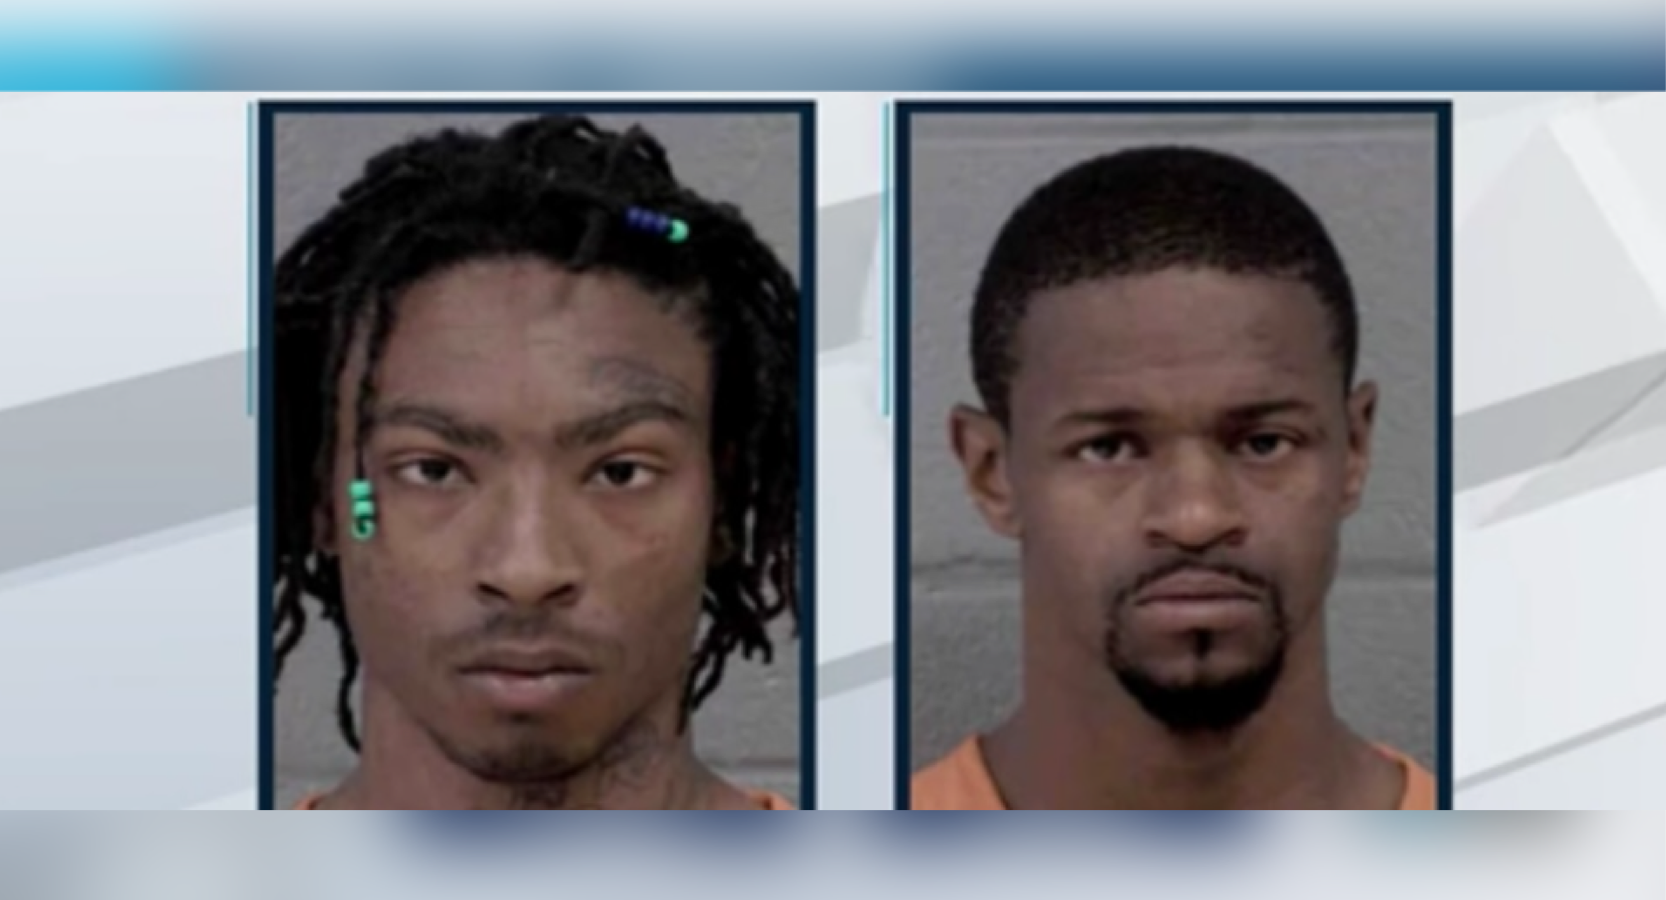 Two men are under arrest & facing murder charges after allegedly targeting trans women